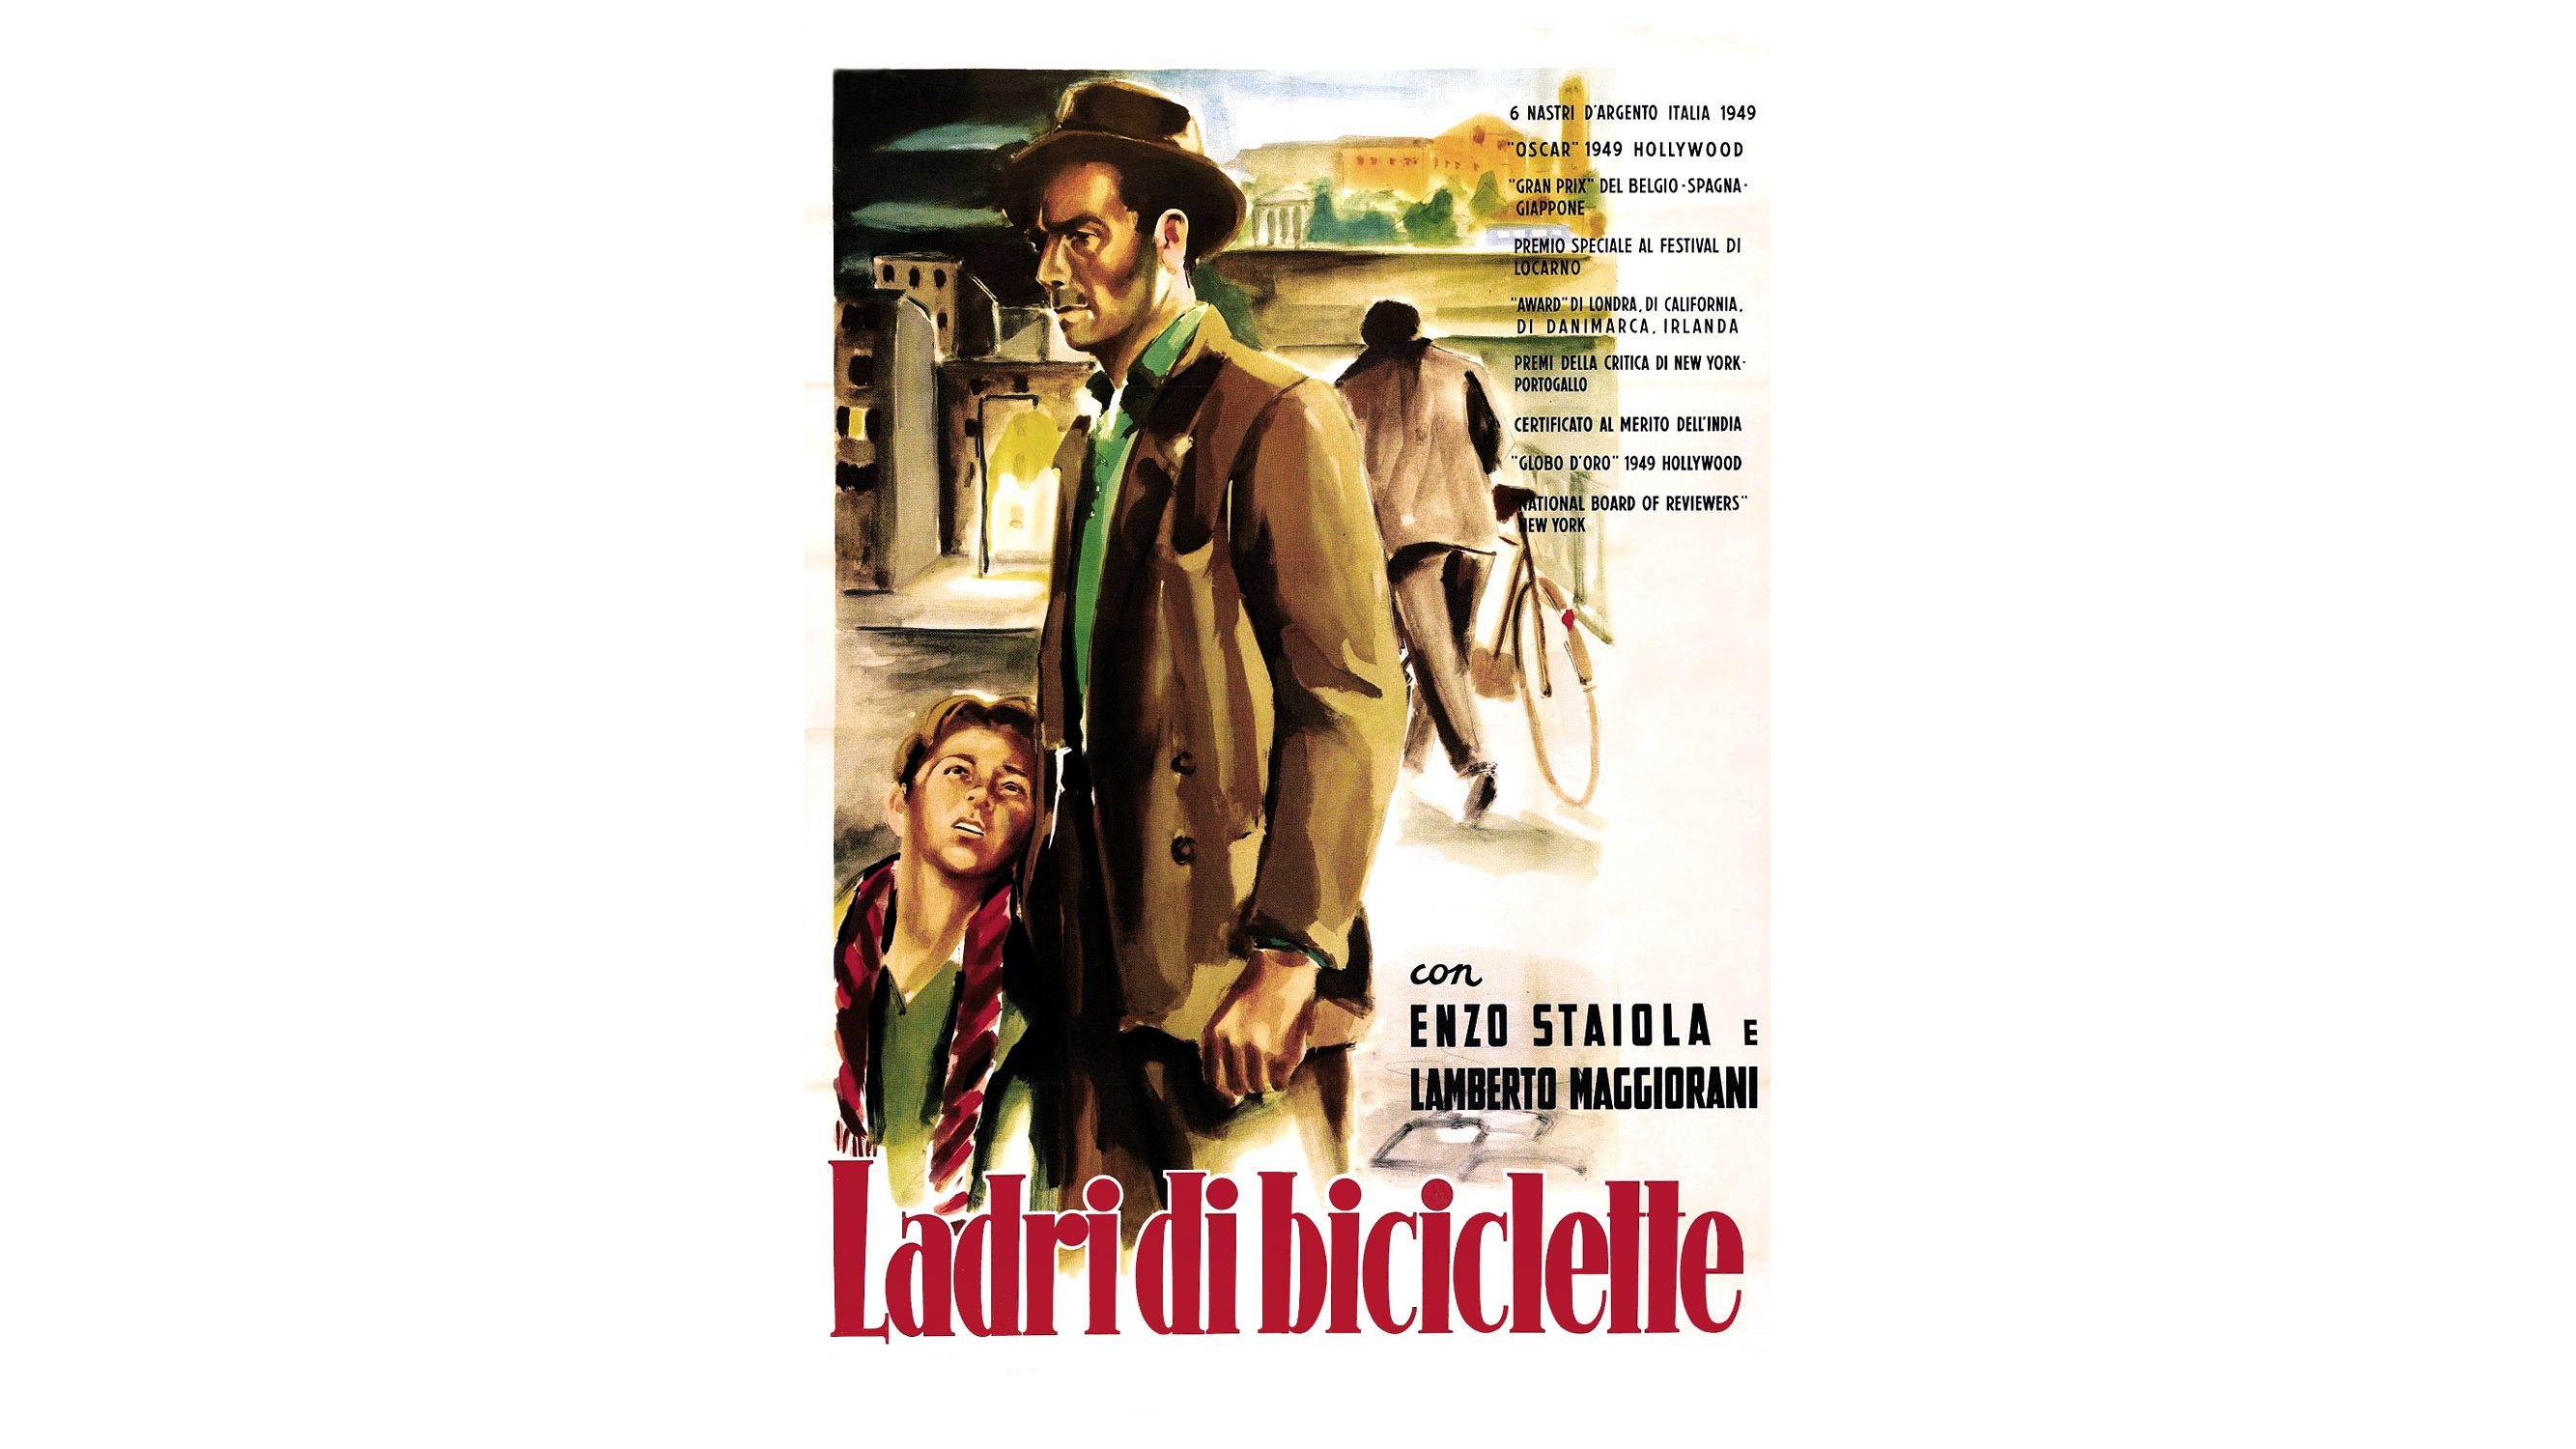 a literary analysis of the bicycle thief by vittorio de sica Space odyssey this film has thesis  film institute pays tribute to 'the bicycle thief': de sica's  2009/01/15/shoeshine-sciuscia-vittorio-de-sica-1946.